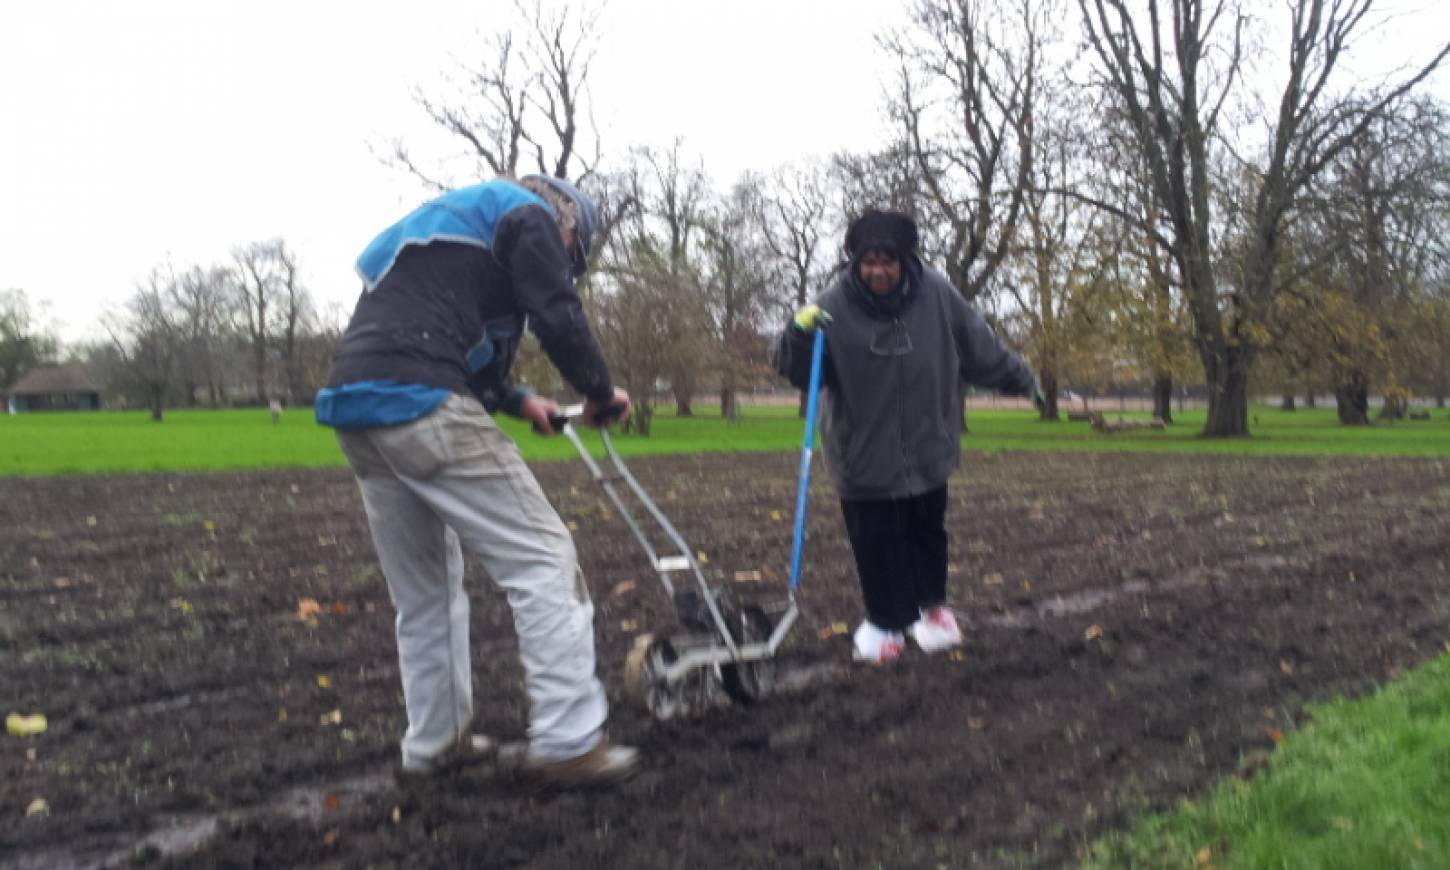 Day 1 sowing on Ruskin Park, 'the Wheats Field', Andy and Annick drilling, pics <a href='http://www.brockwellgreenhouses.org.uk/welcome/' target=_blank>Ann Bodkin</a> - 3:16pm&nbsp;28<sup>th</sup>&nbsp;Nov.&nbsp;'15